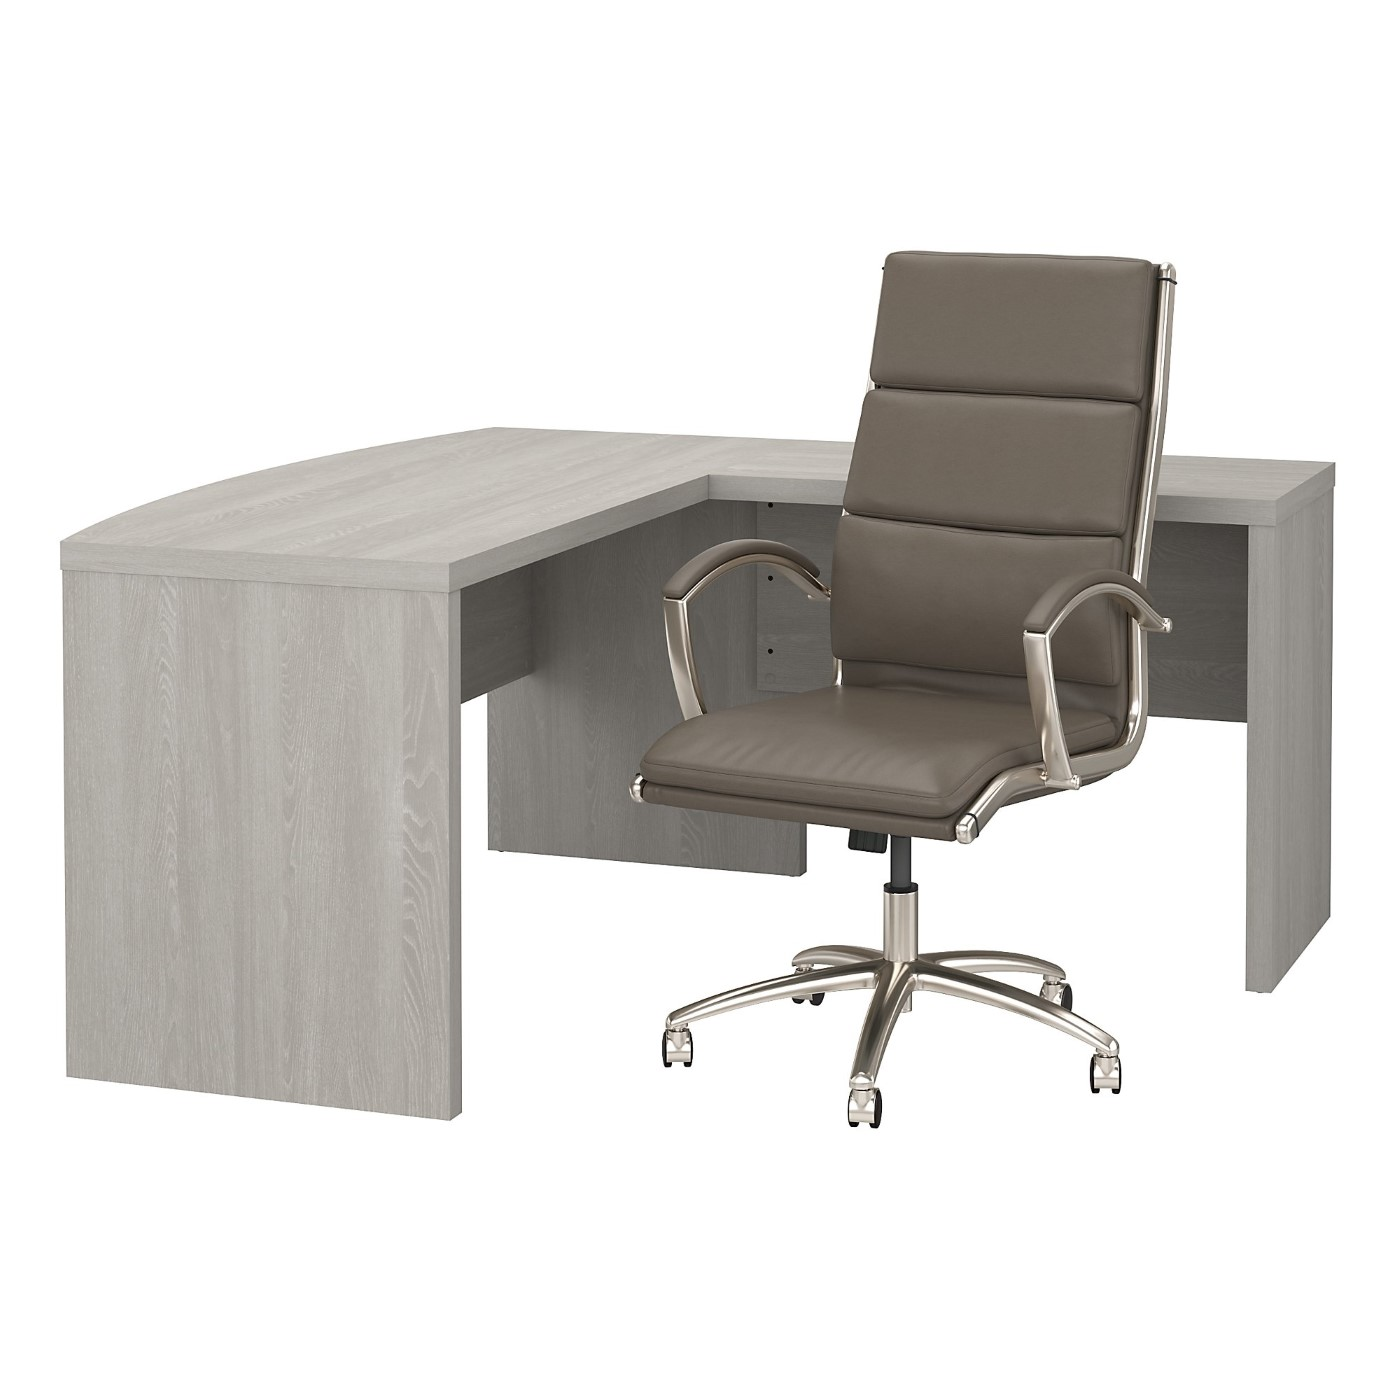 The kathy ireland� Echo L Shaped Bow Front Desk with High Back Chair is Sustainable Eco Friendly Furniture. Includes Free Shipping! 30H x 72L x 72W  VIDEO BELOW.